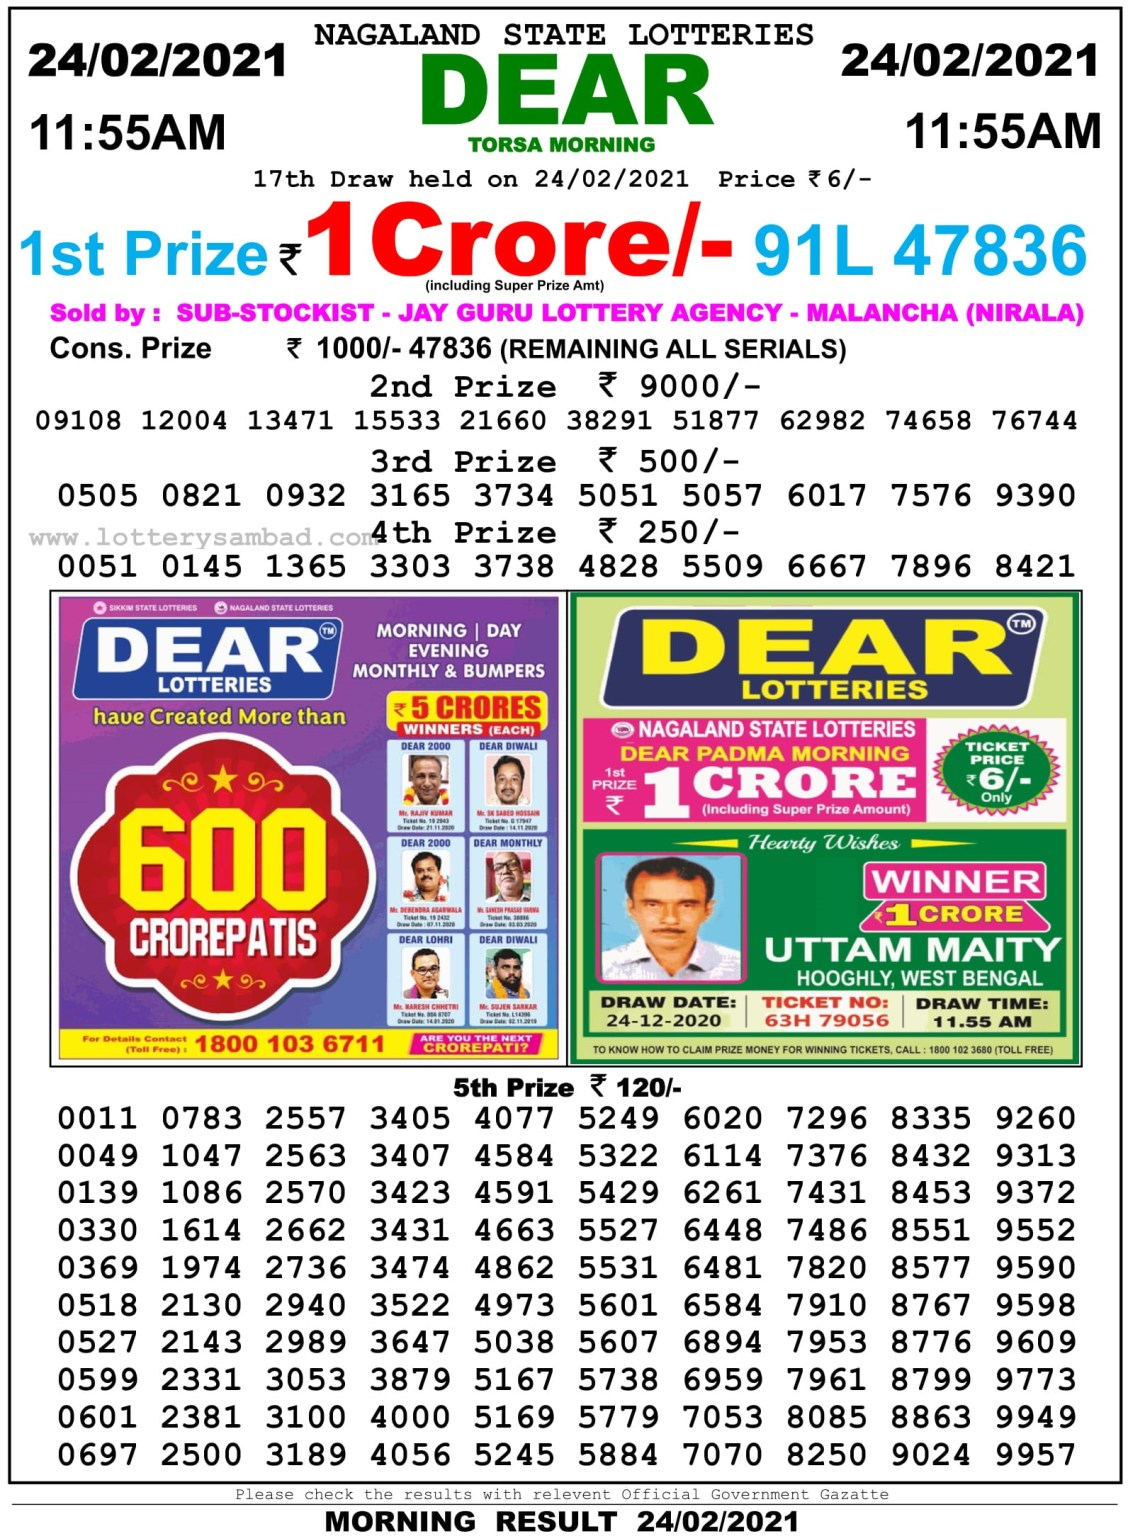 Nagaland state lottery result 24.02.2021